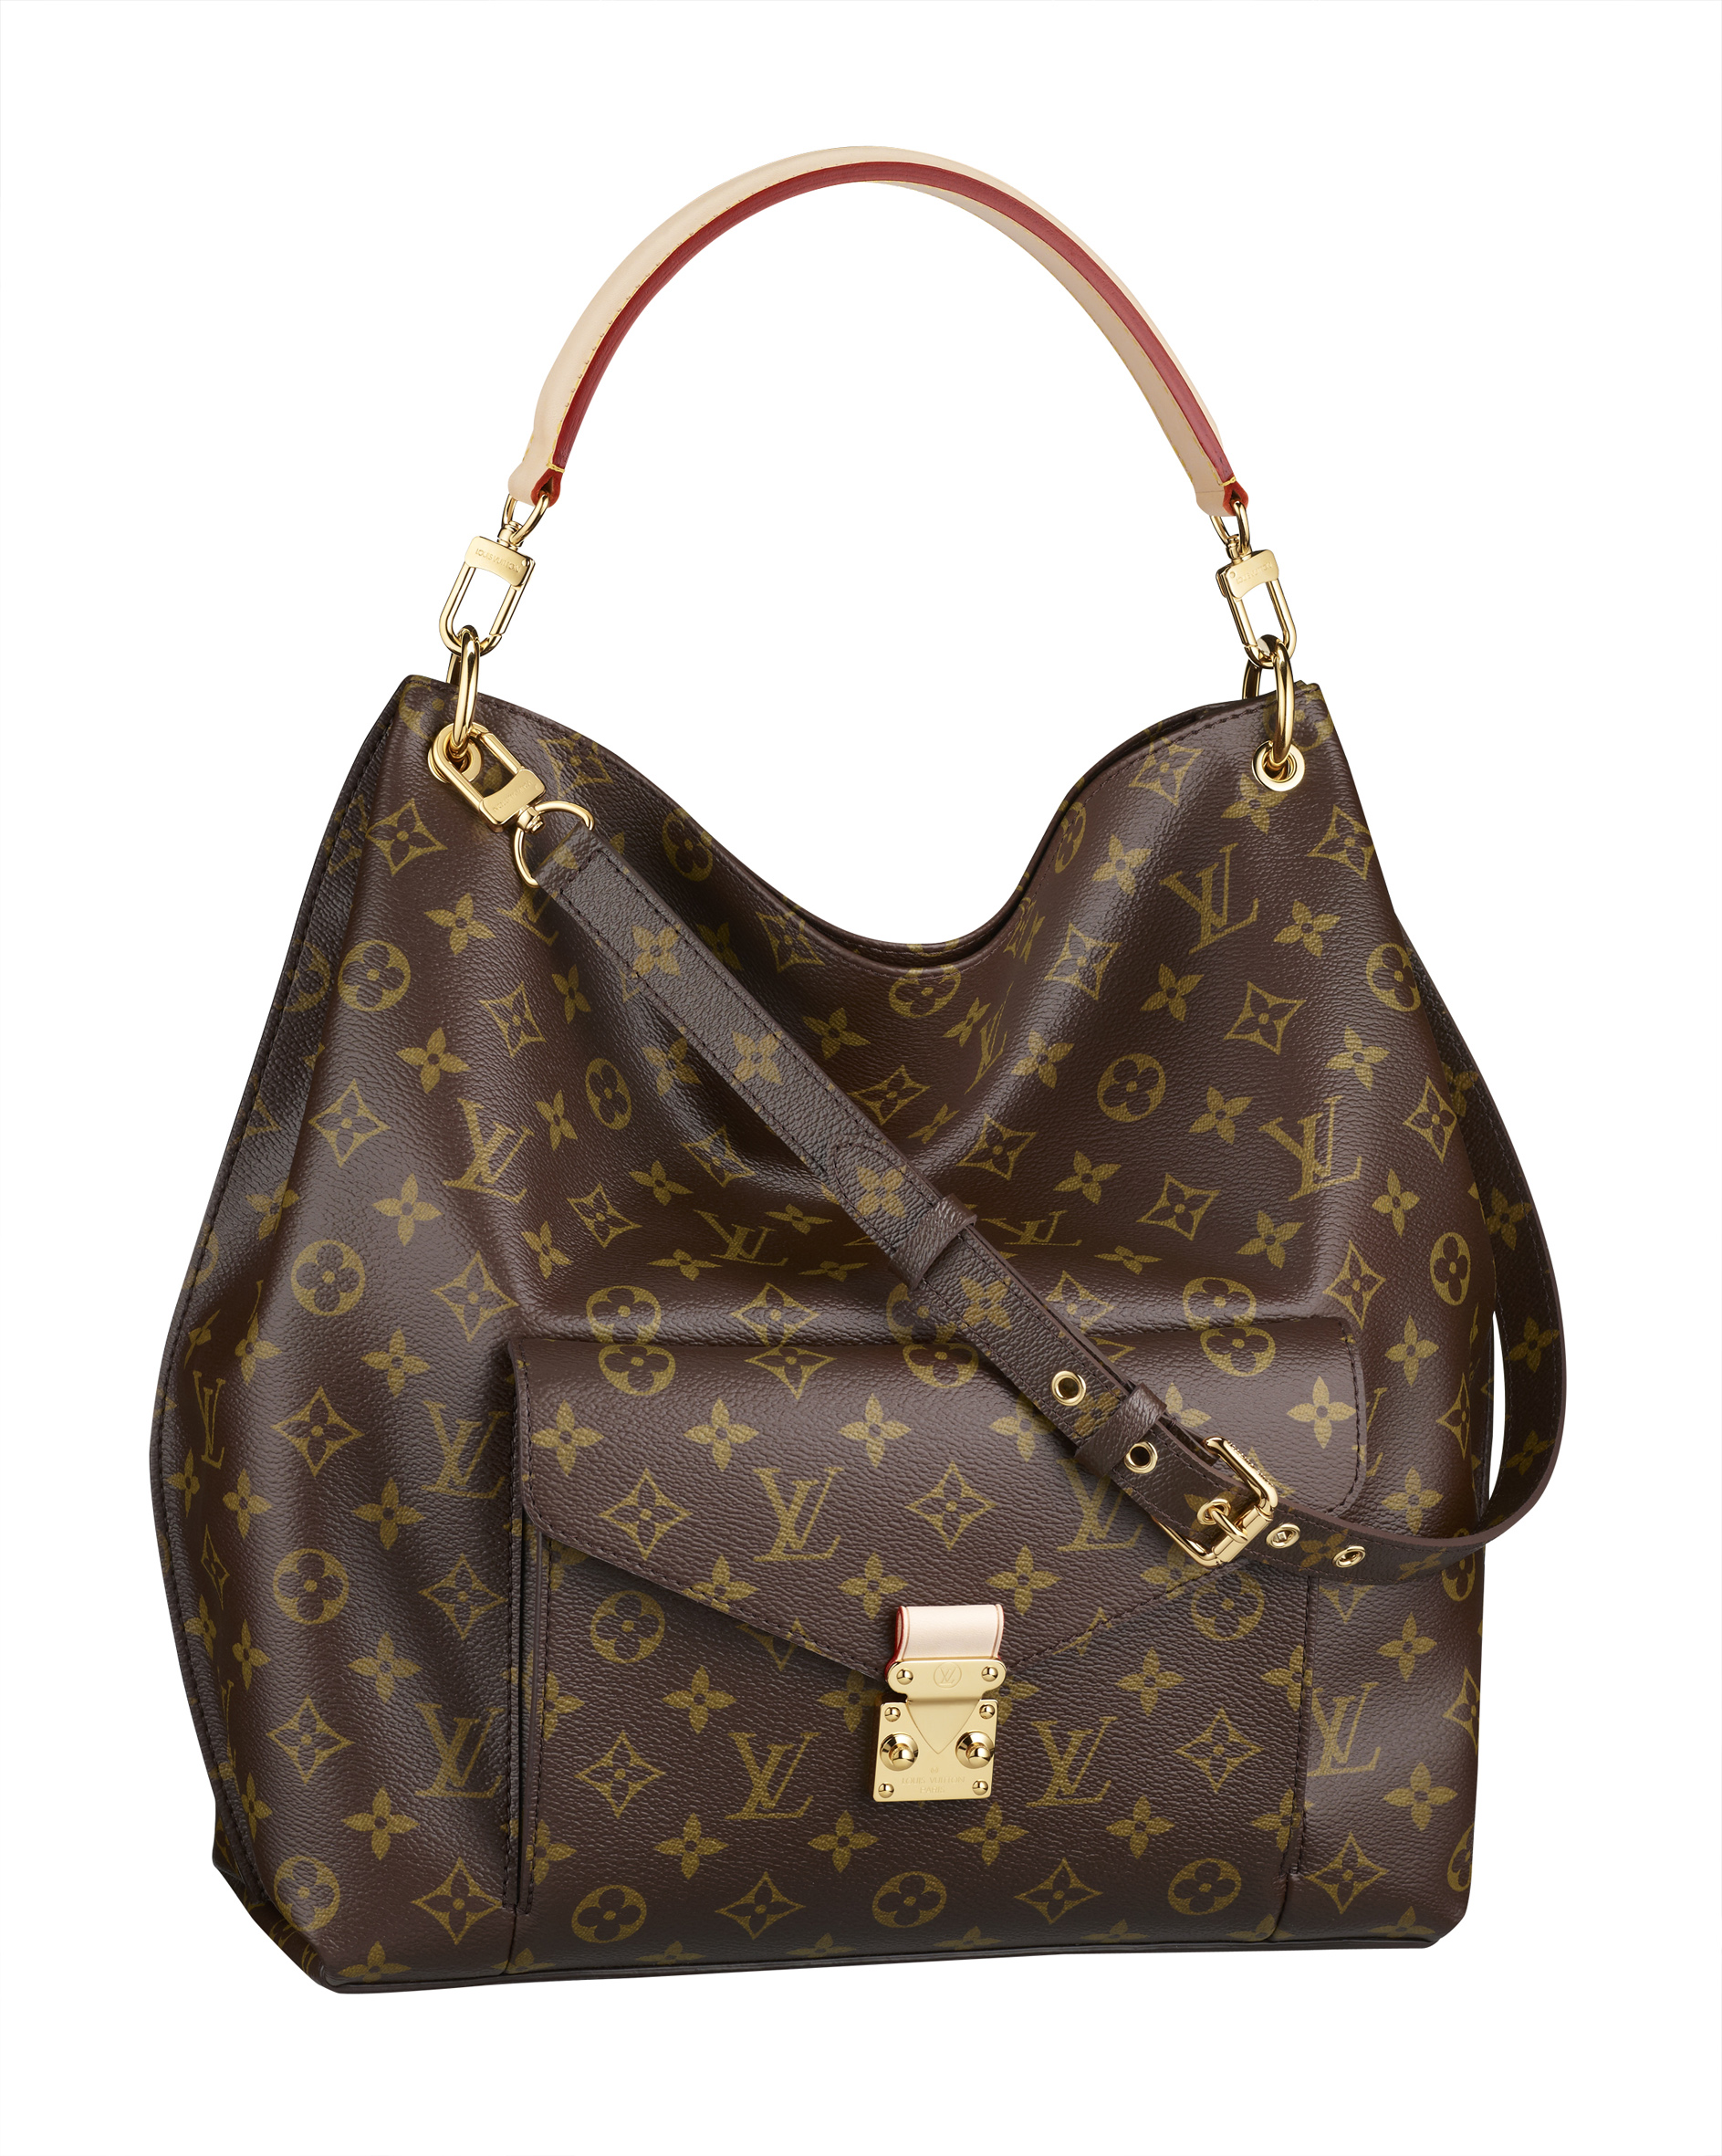 (c) Louis Vuitton - Monogram Metis